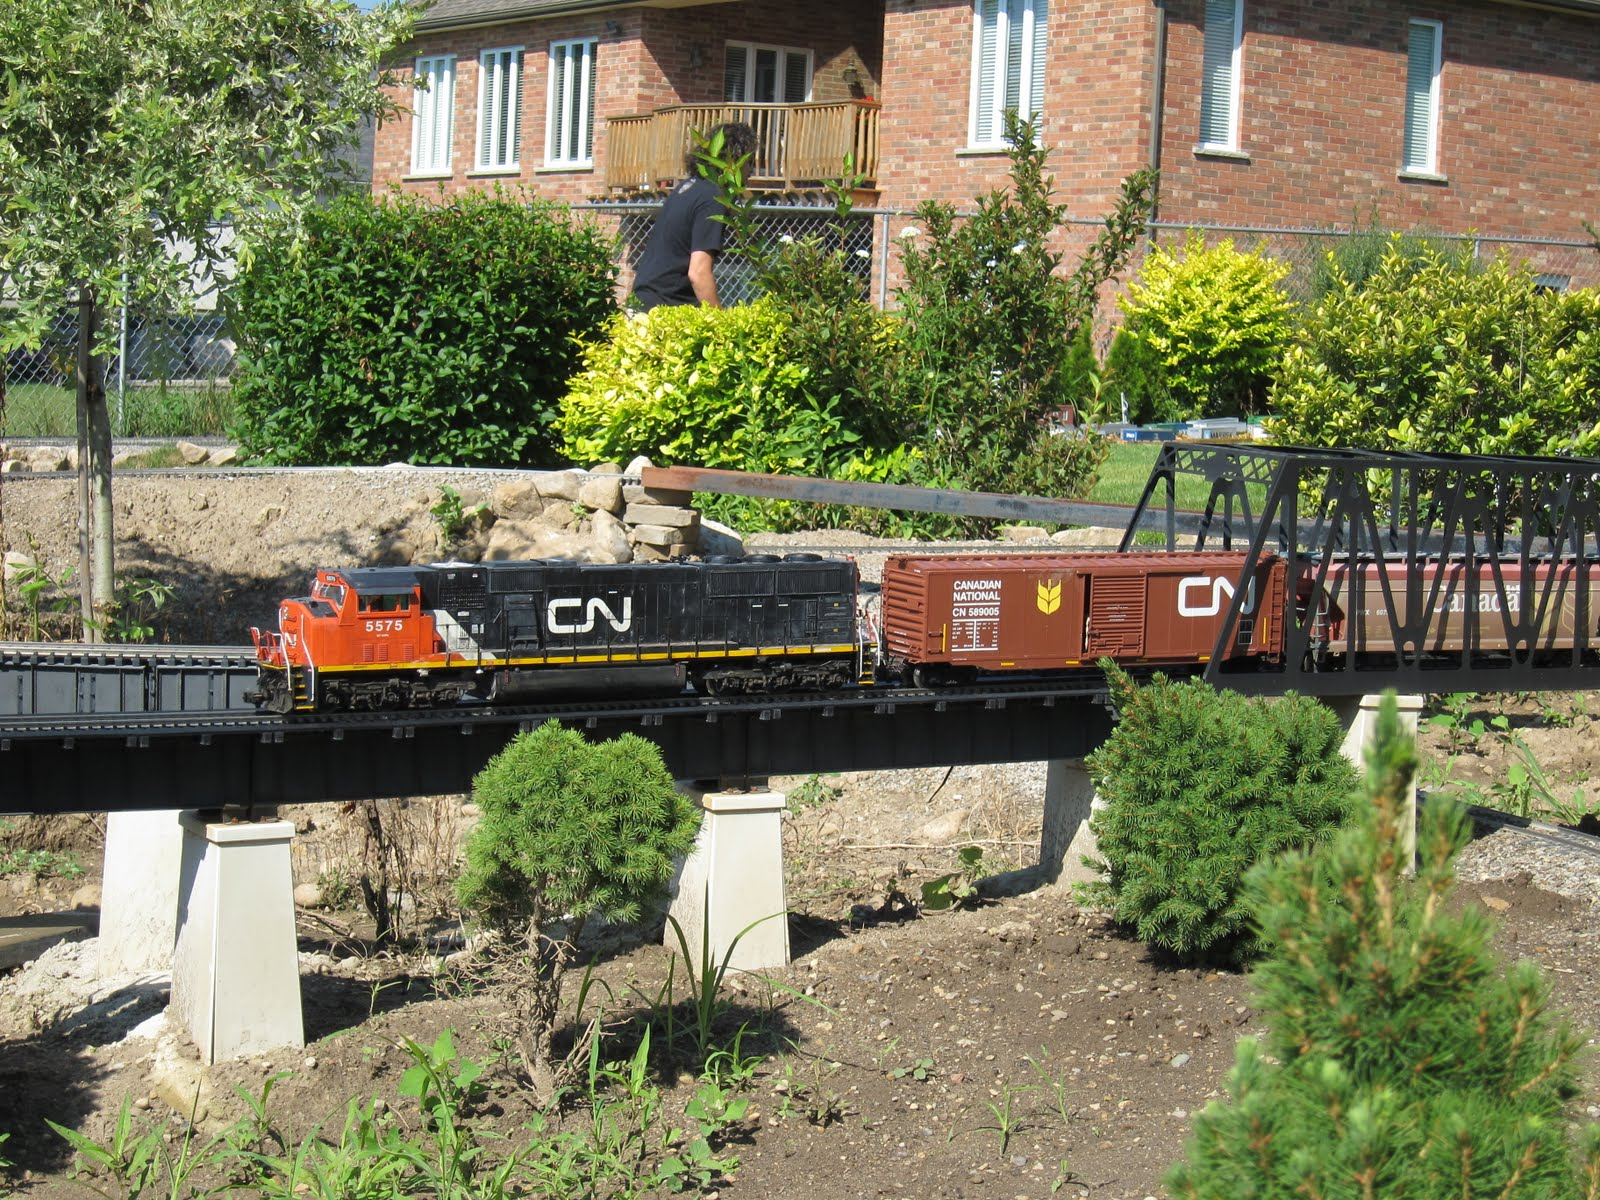 G-Scale Train Fun Our Visit To Winona Garden Railway - Part 1 - 07-17-2010